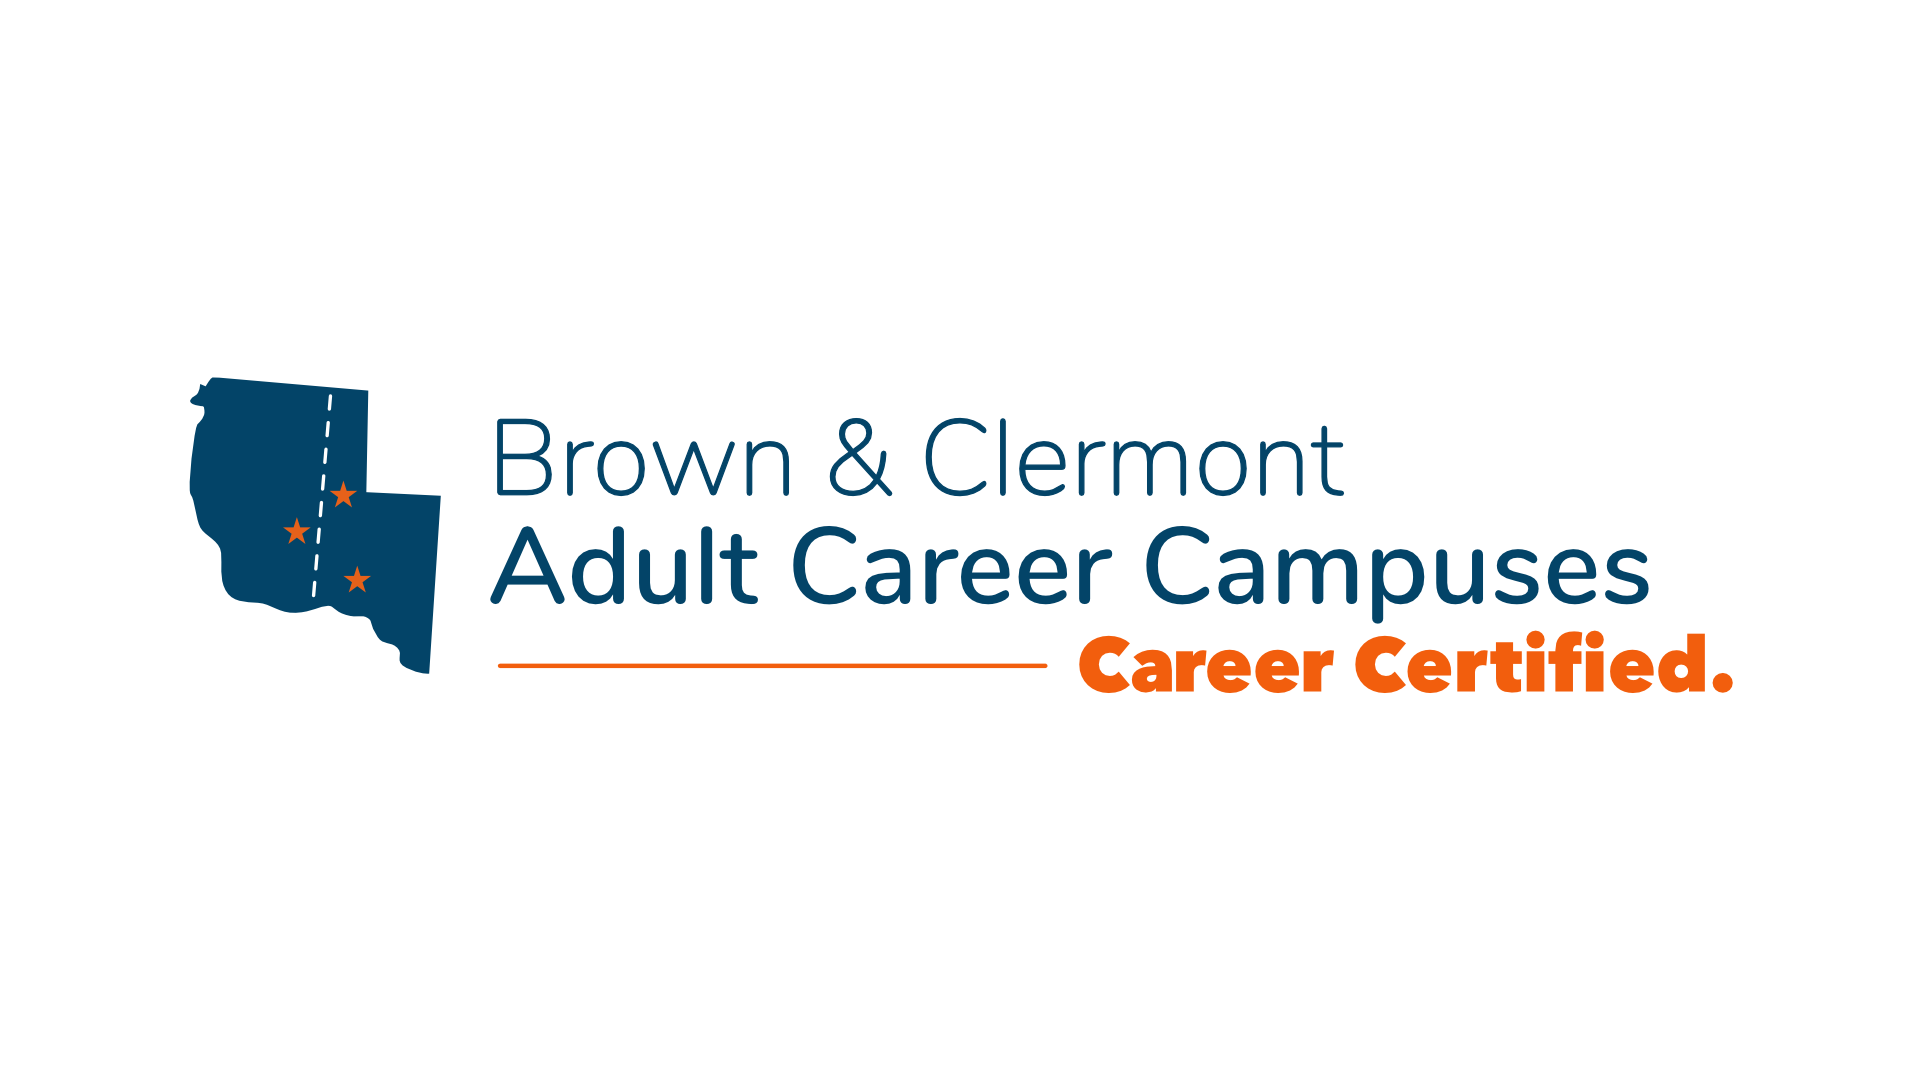 Brown & Clermont Adult Career Campus logo